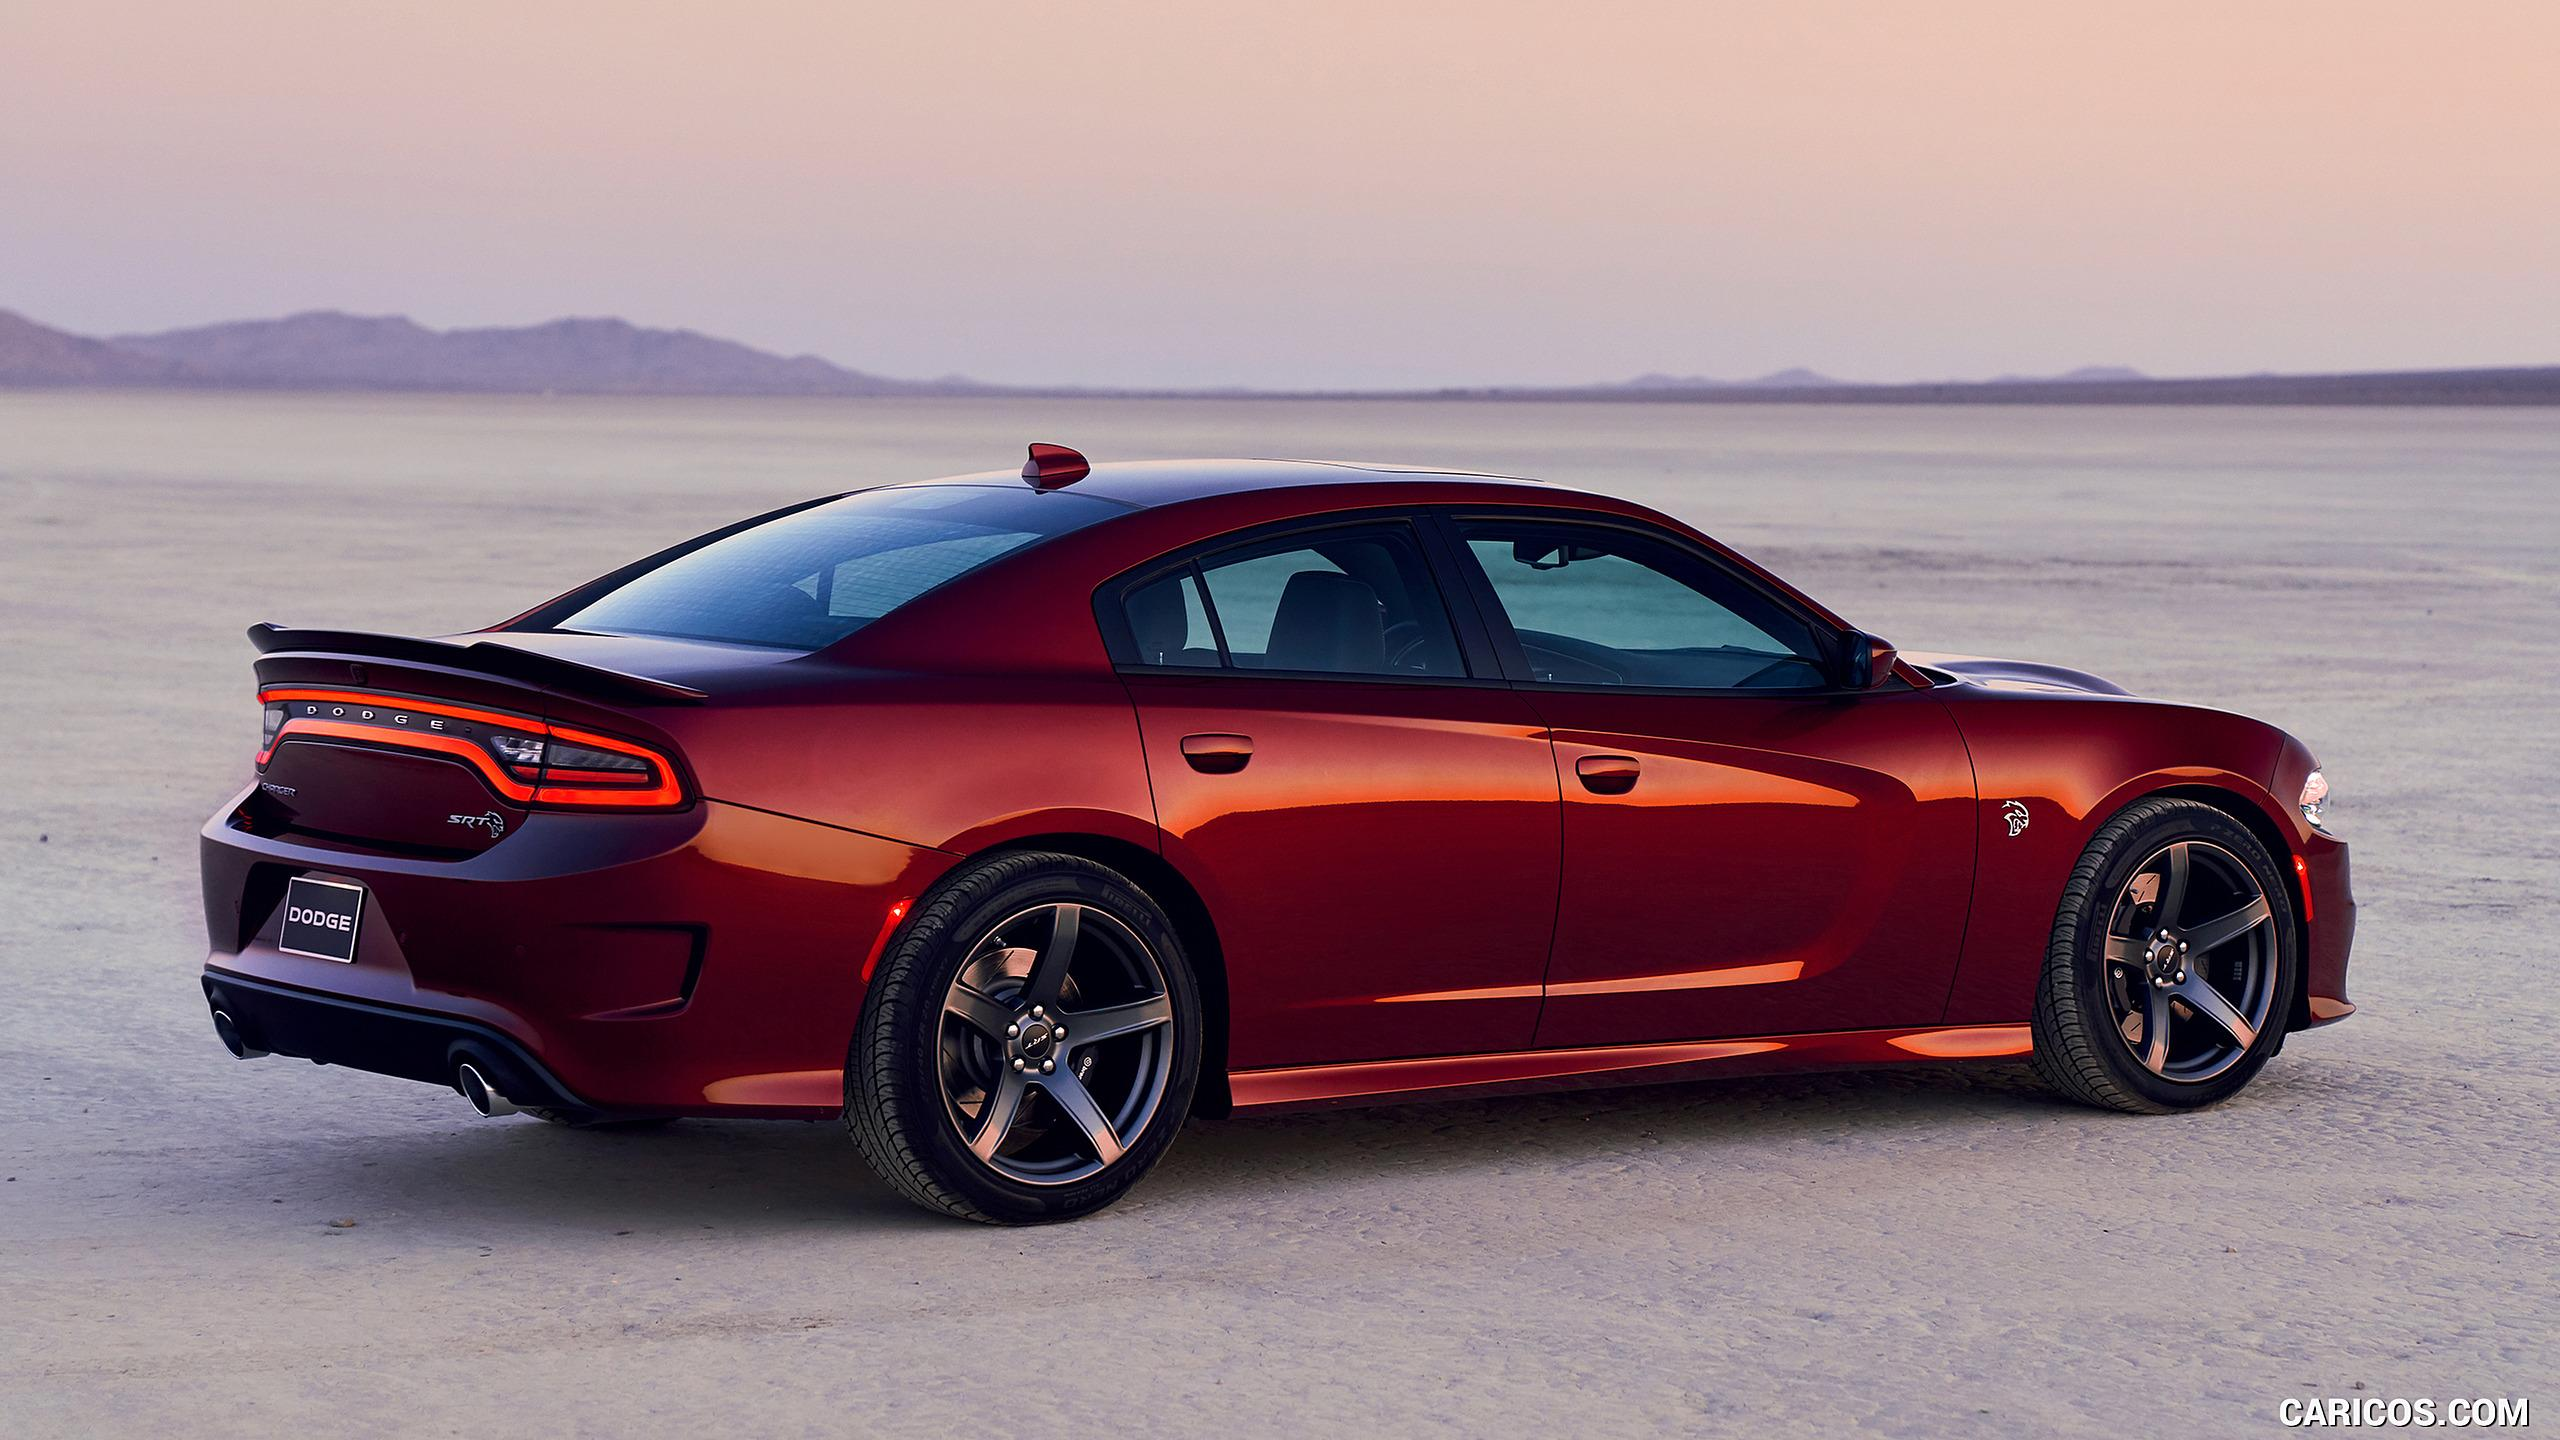 2019 Dodge Charger Srt Hellcat Rear Three Quarter Hd Wallpapers 4